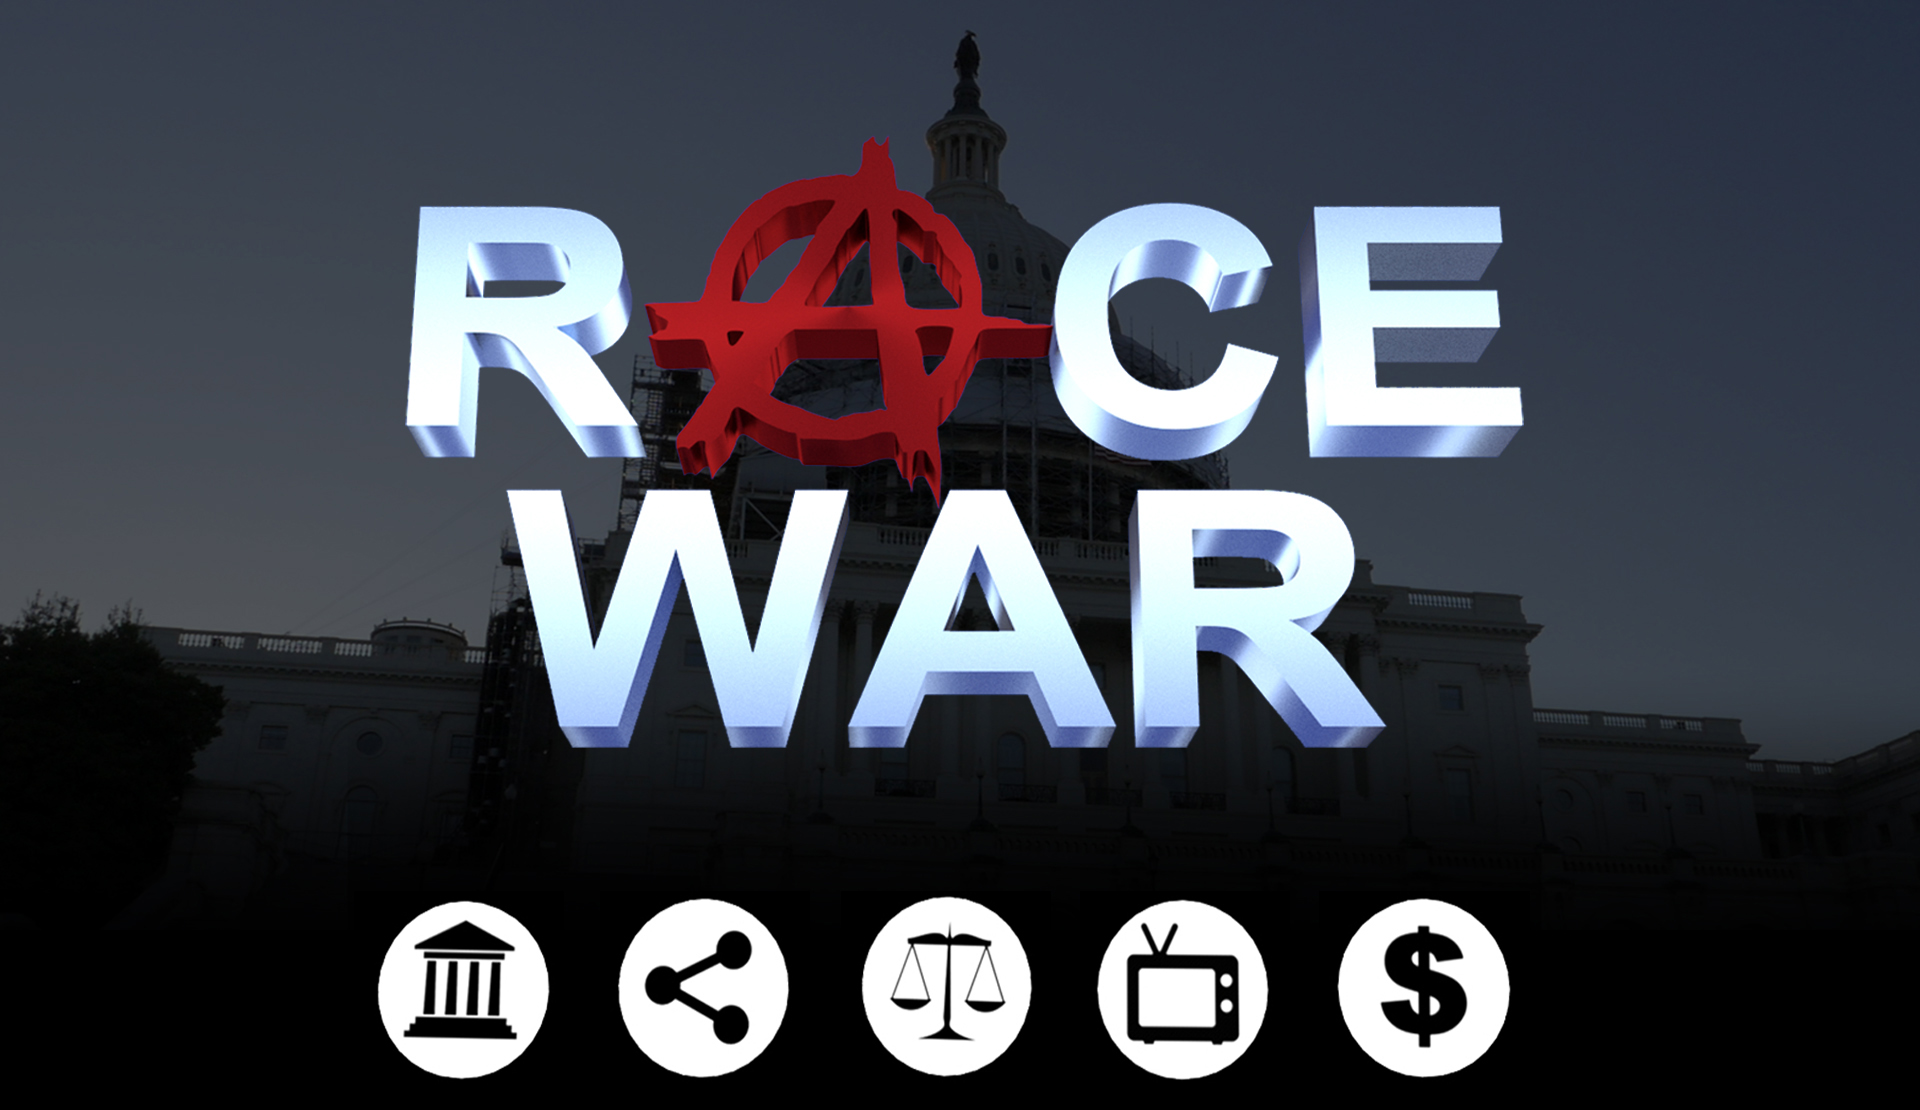 South London Premiere of new documentary 'RACE WAR'